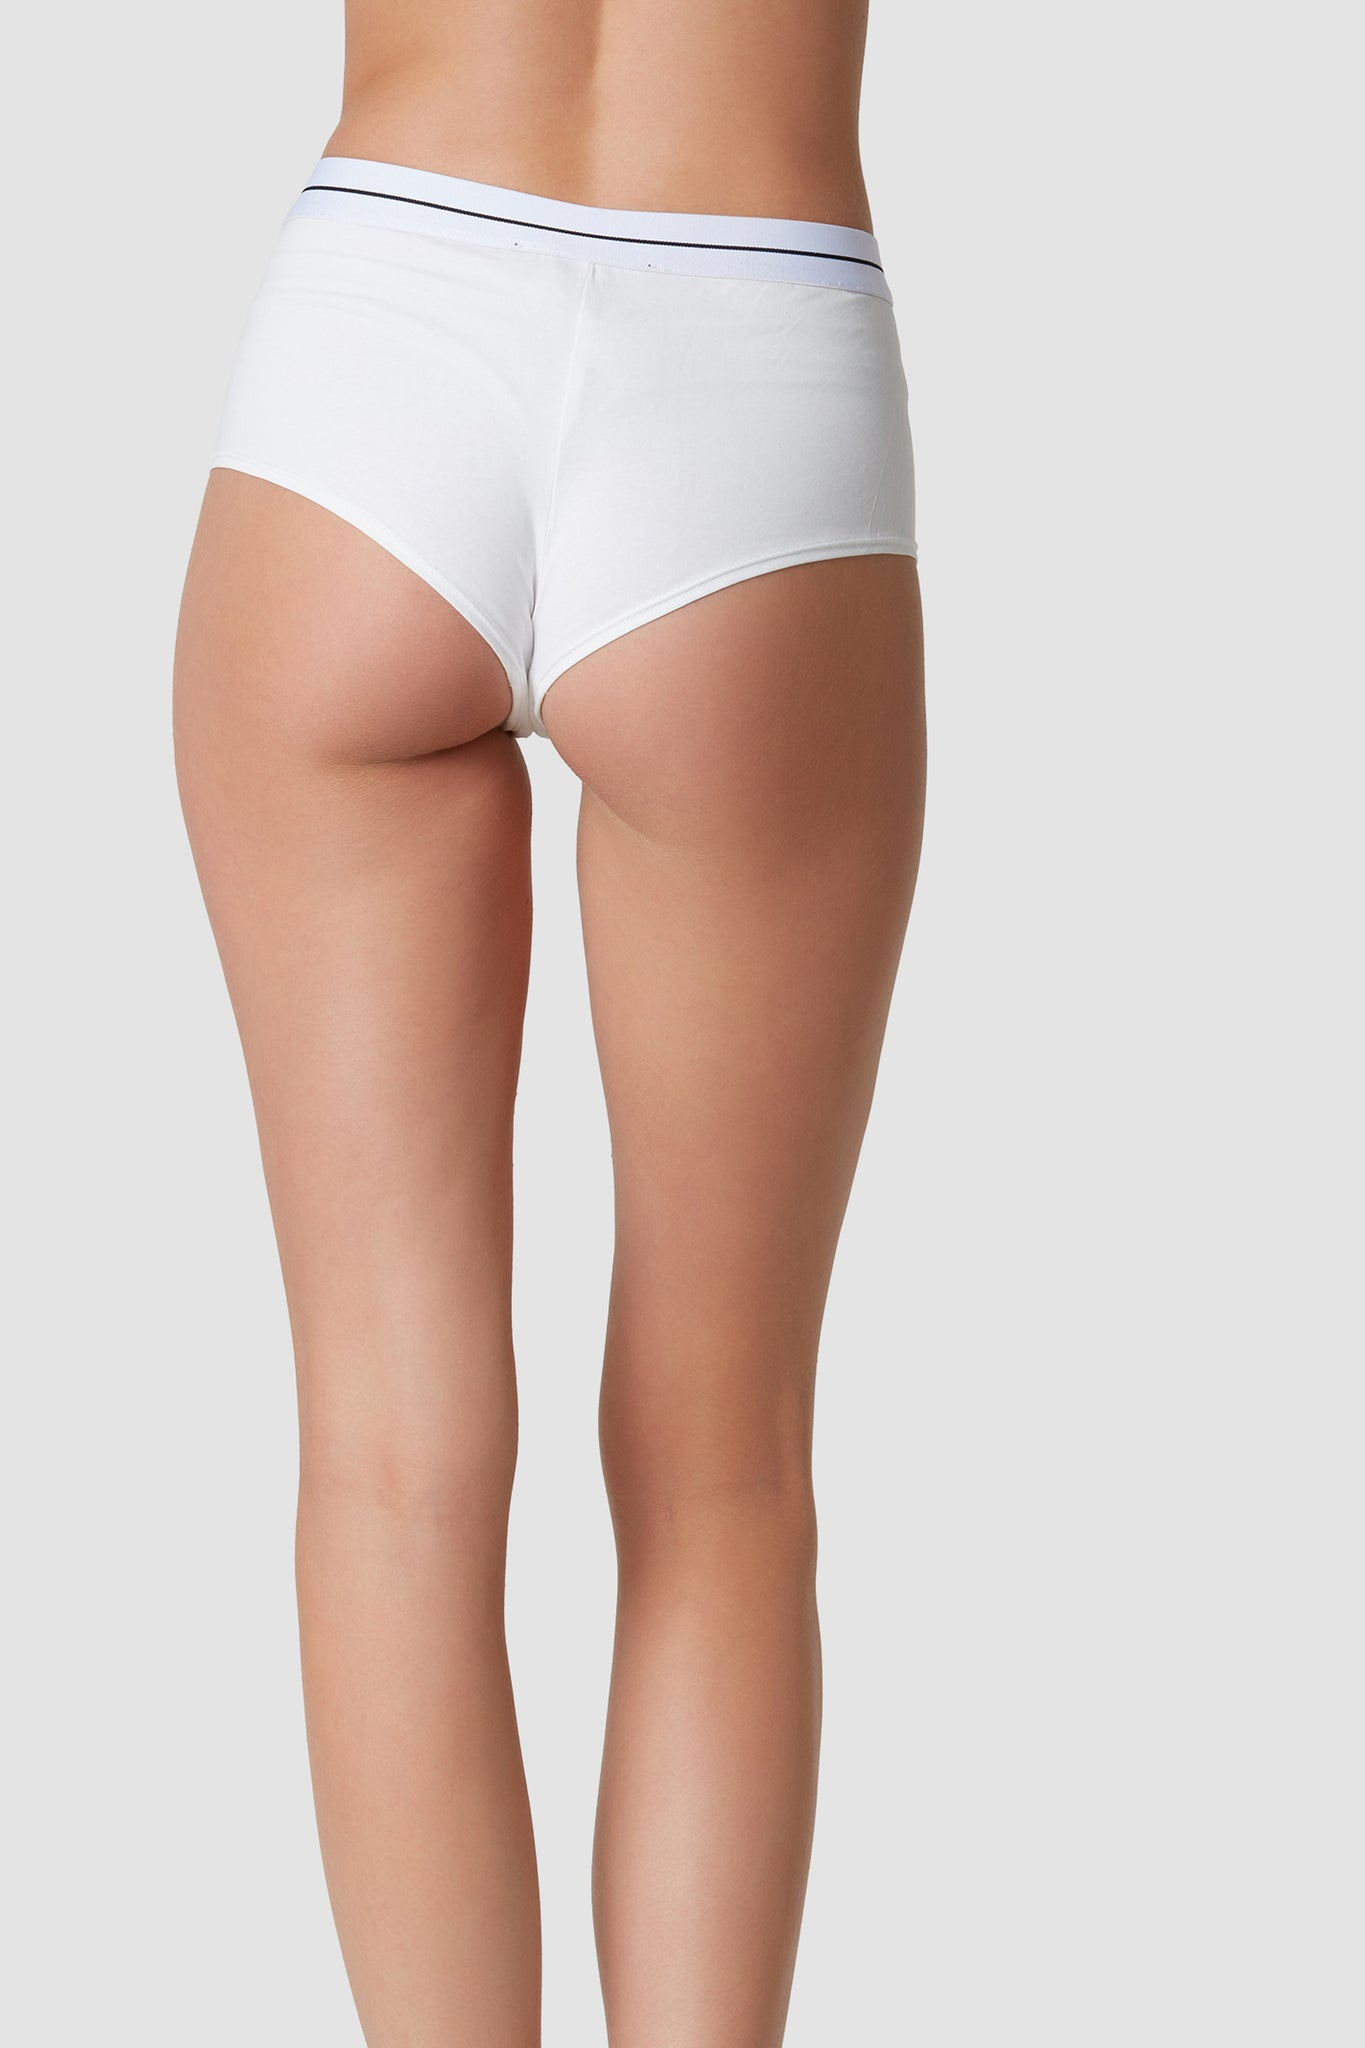 Comfortable stretchy pair of boyfriend briefs with trendy contrast waistband with stripe detailing.